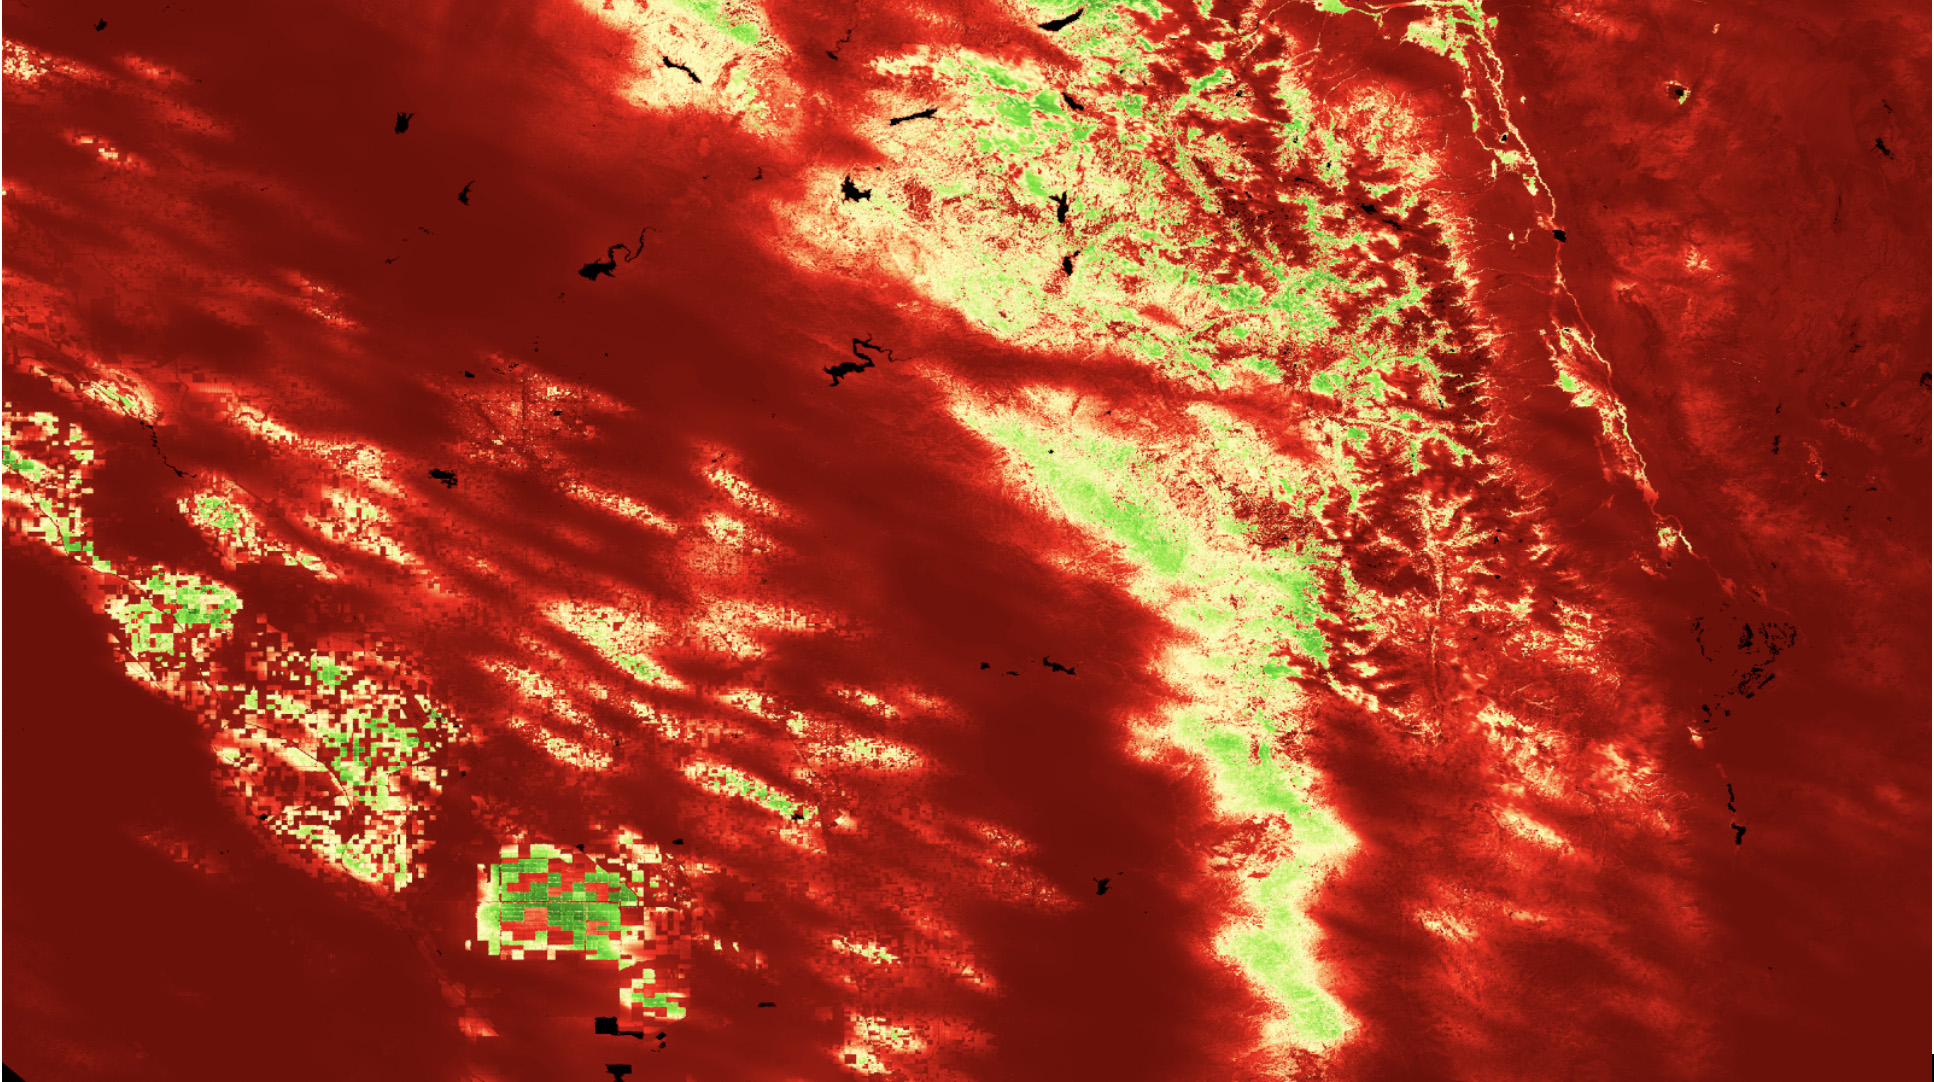 Level 4 Evaporative Stress Index PT-JPL, average from August 5, 2018 captured over California's Central Valley. High ESI is in shades of green and low ESI in shades of red.